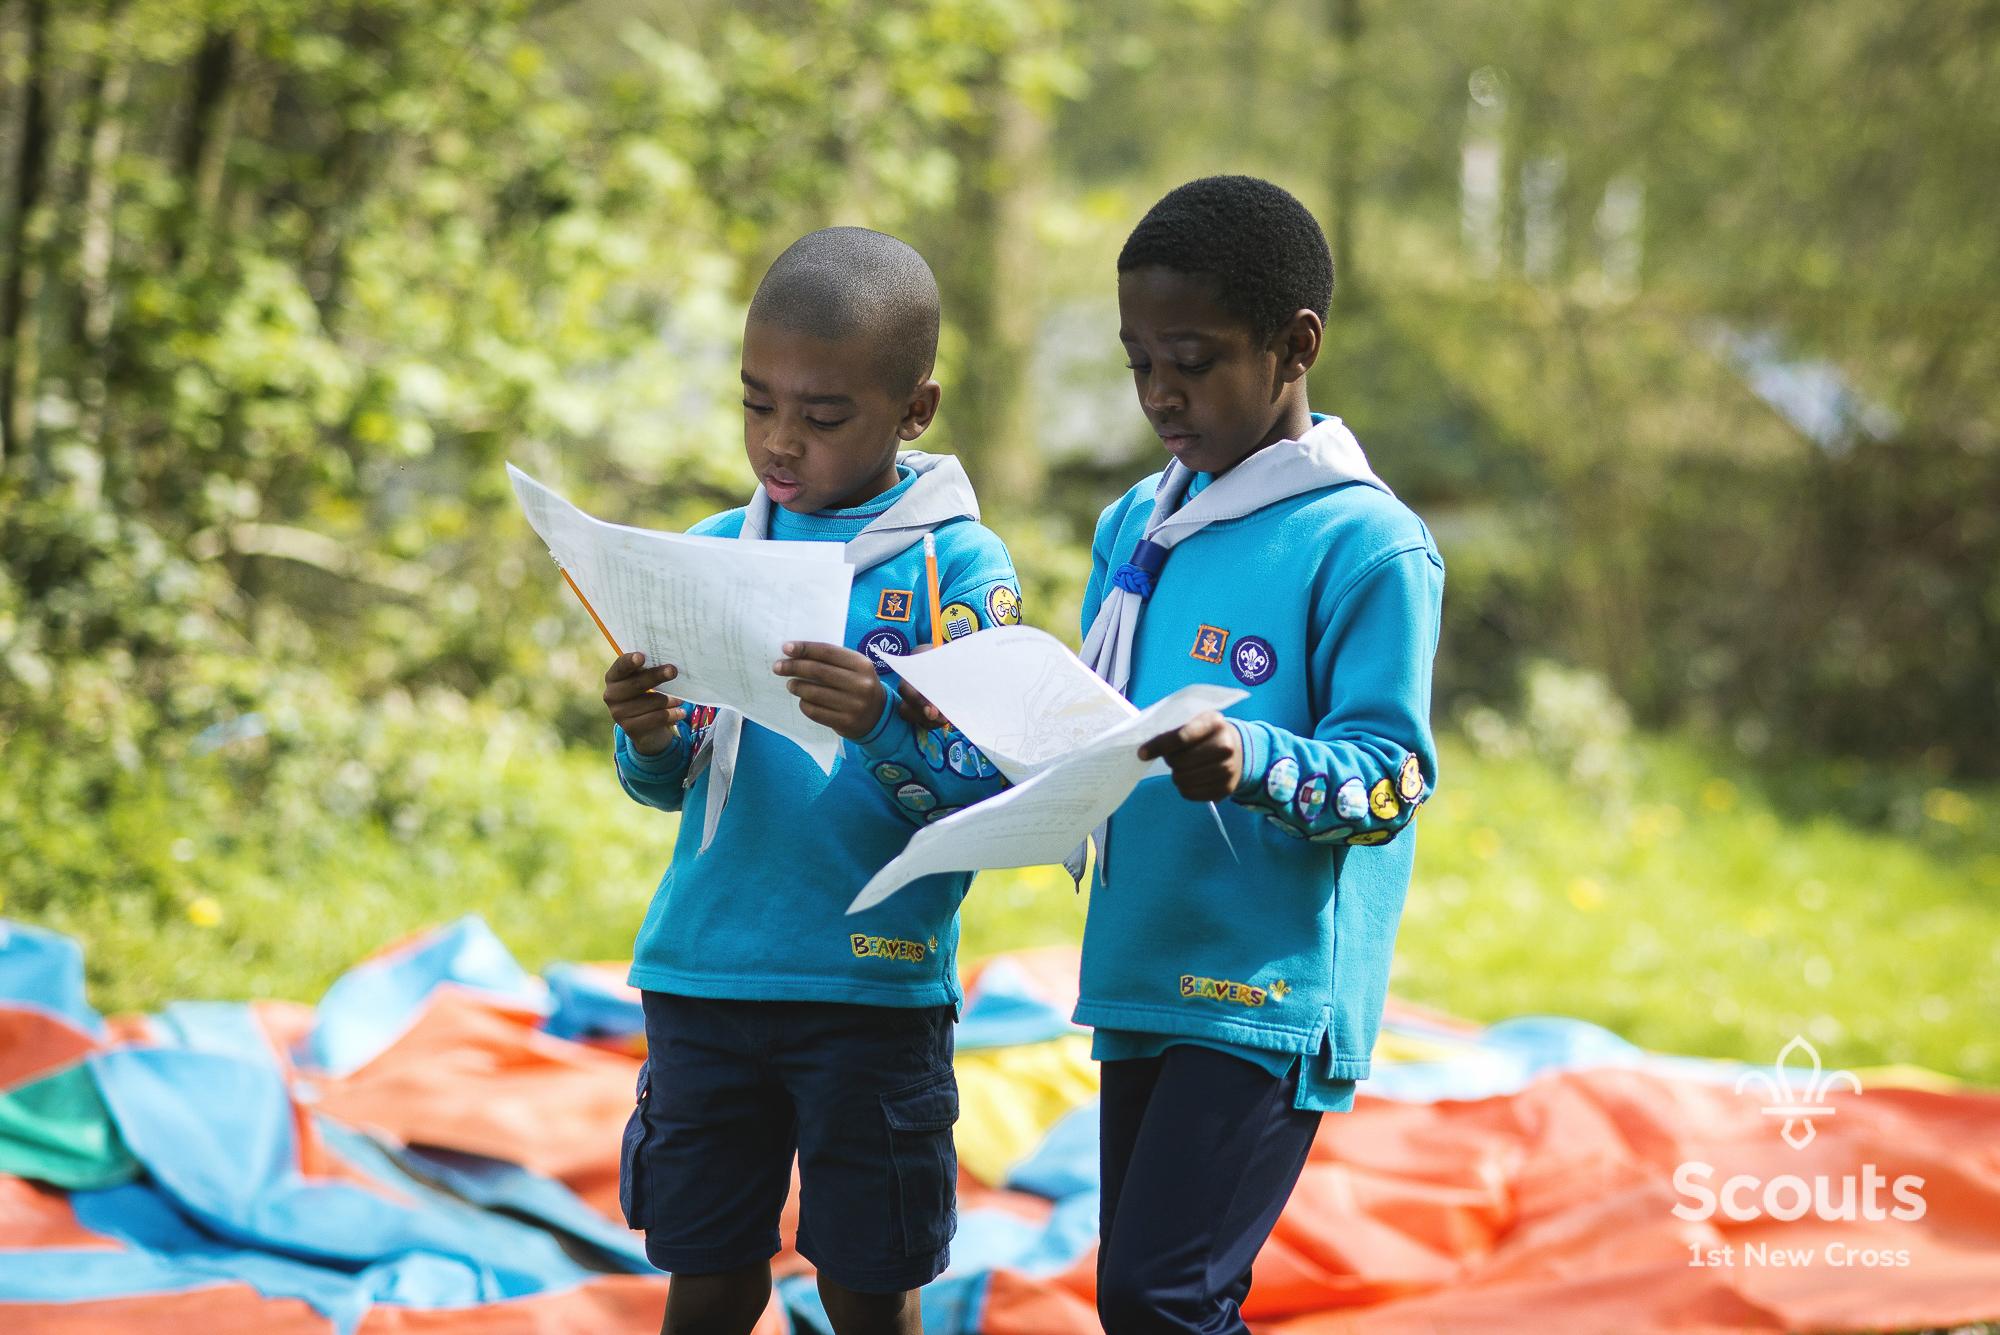 Beaver Scouts – 6 to 8 years